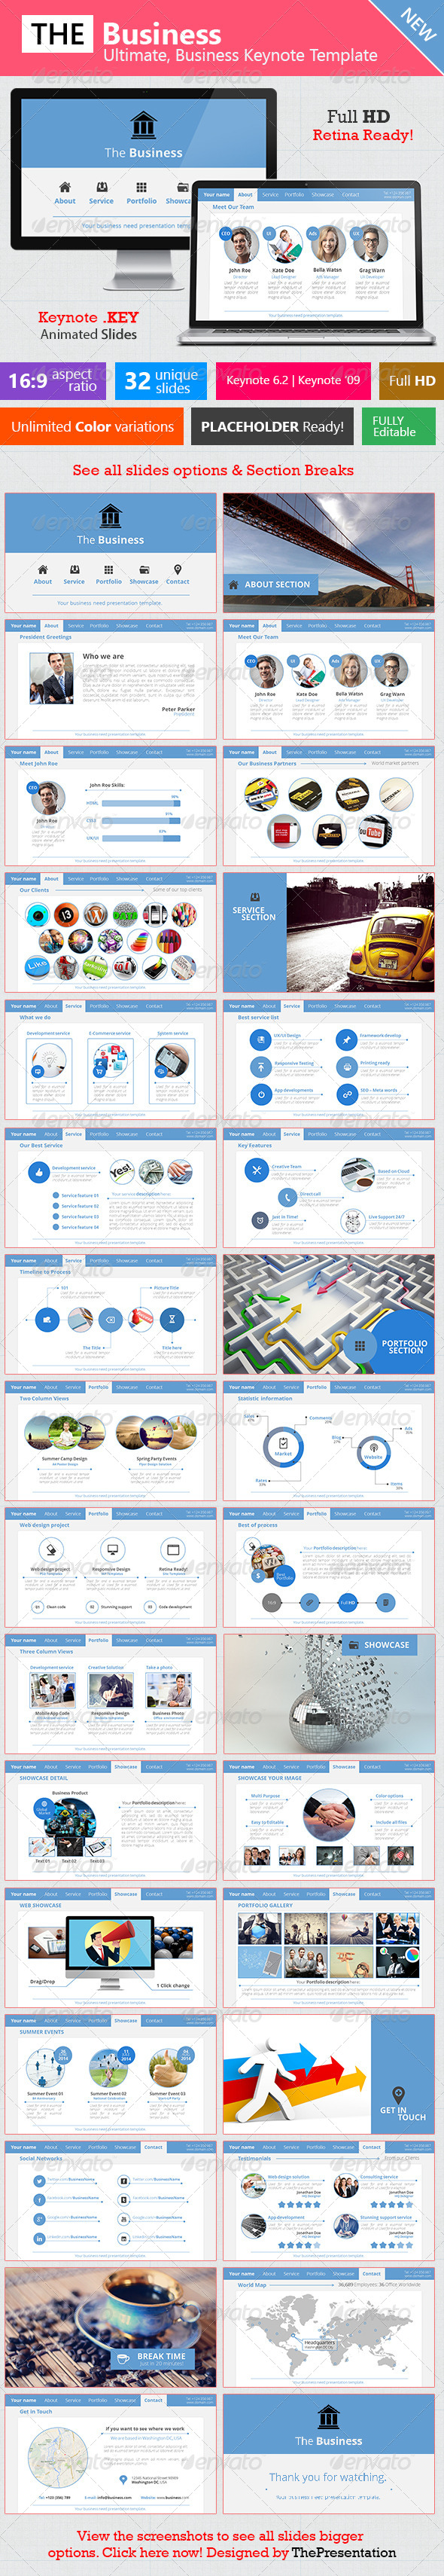 GraphicRiver The Business Ultimate Keynote Template 8008240